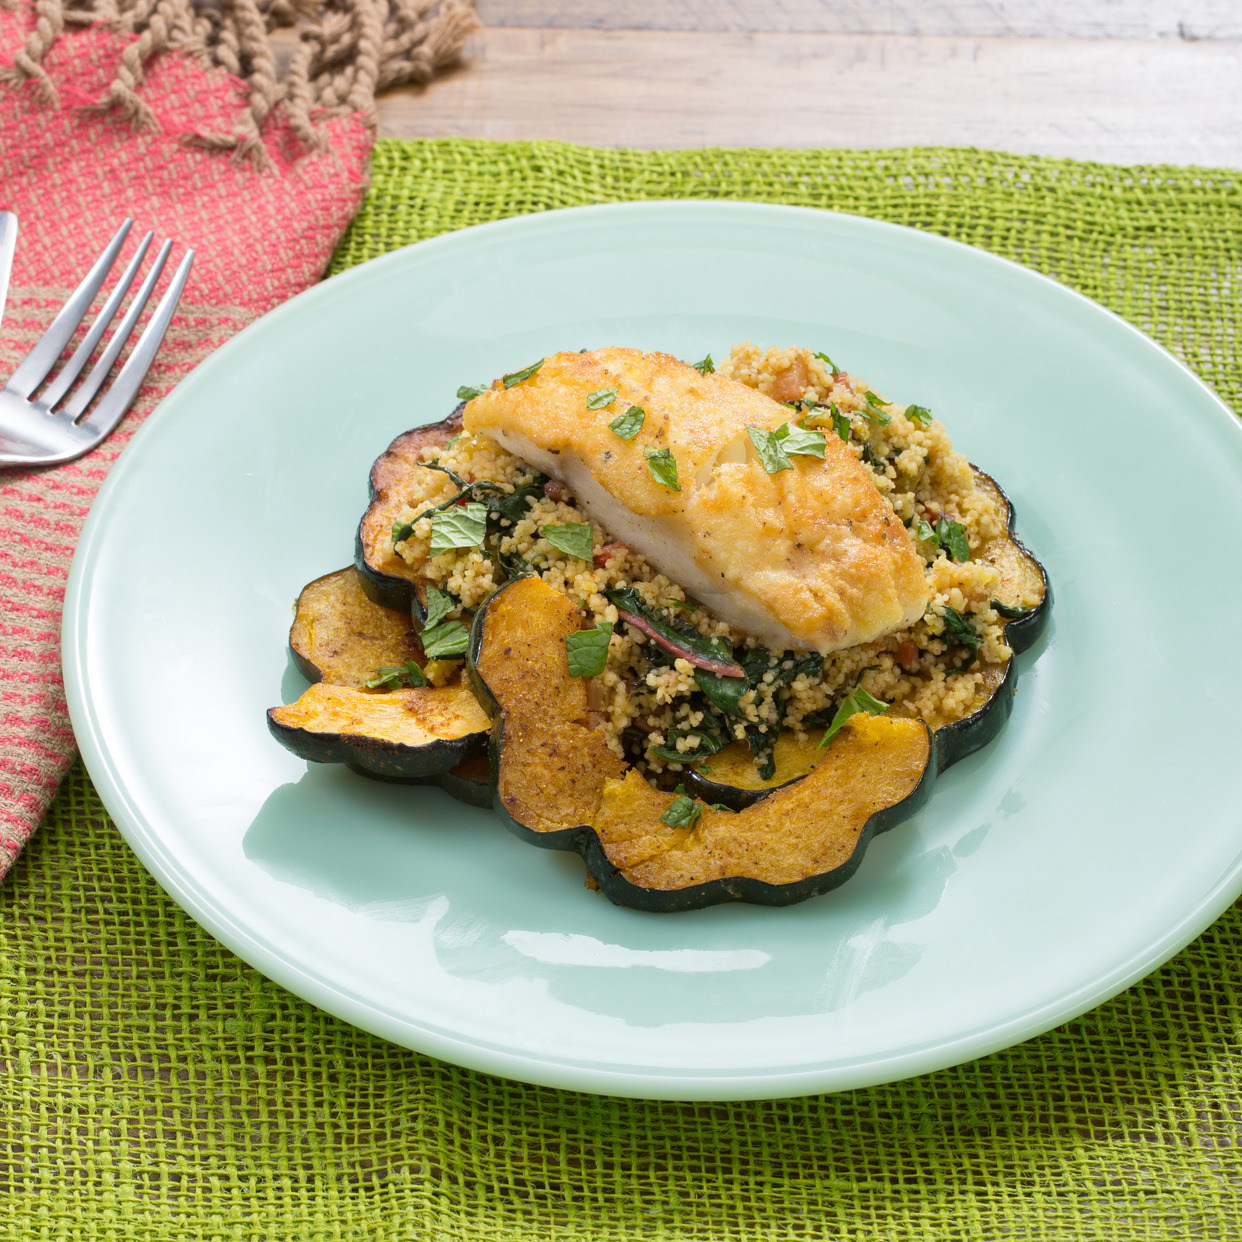 Crispy Cod & Spiced Couscous with Acorn Squash & Rainbow Chard